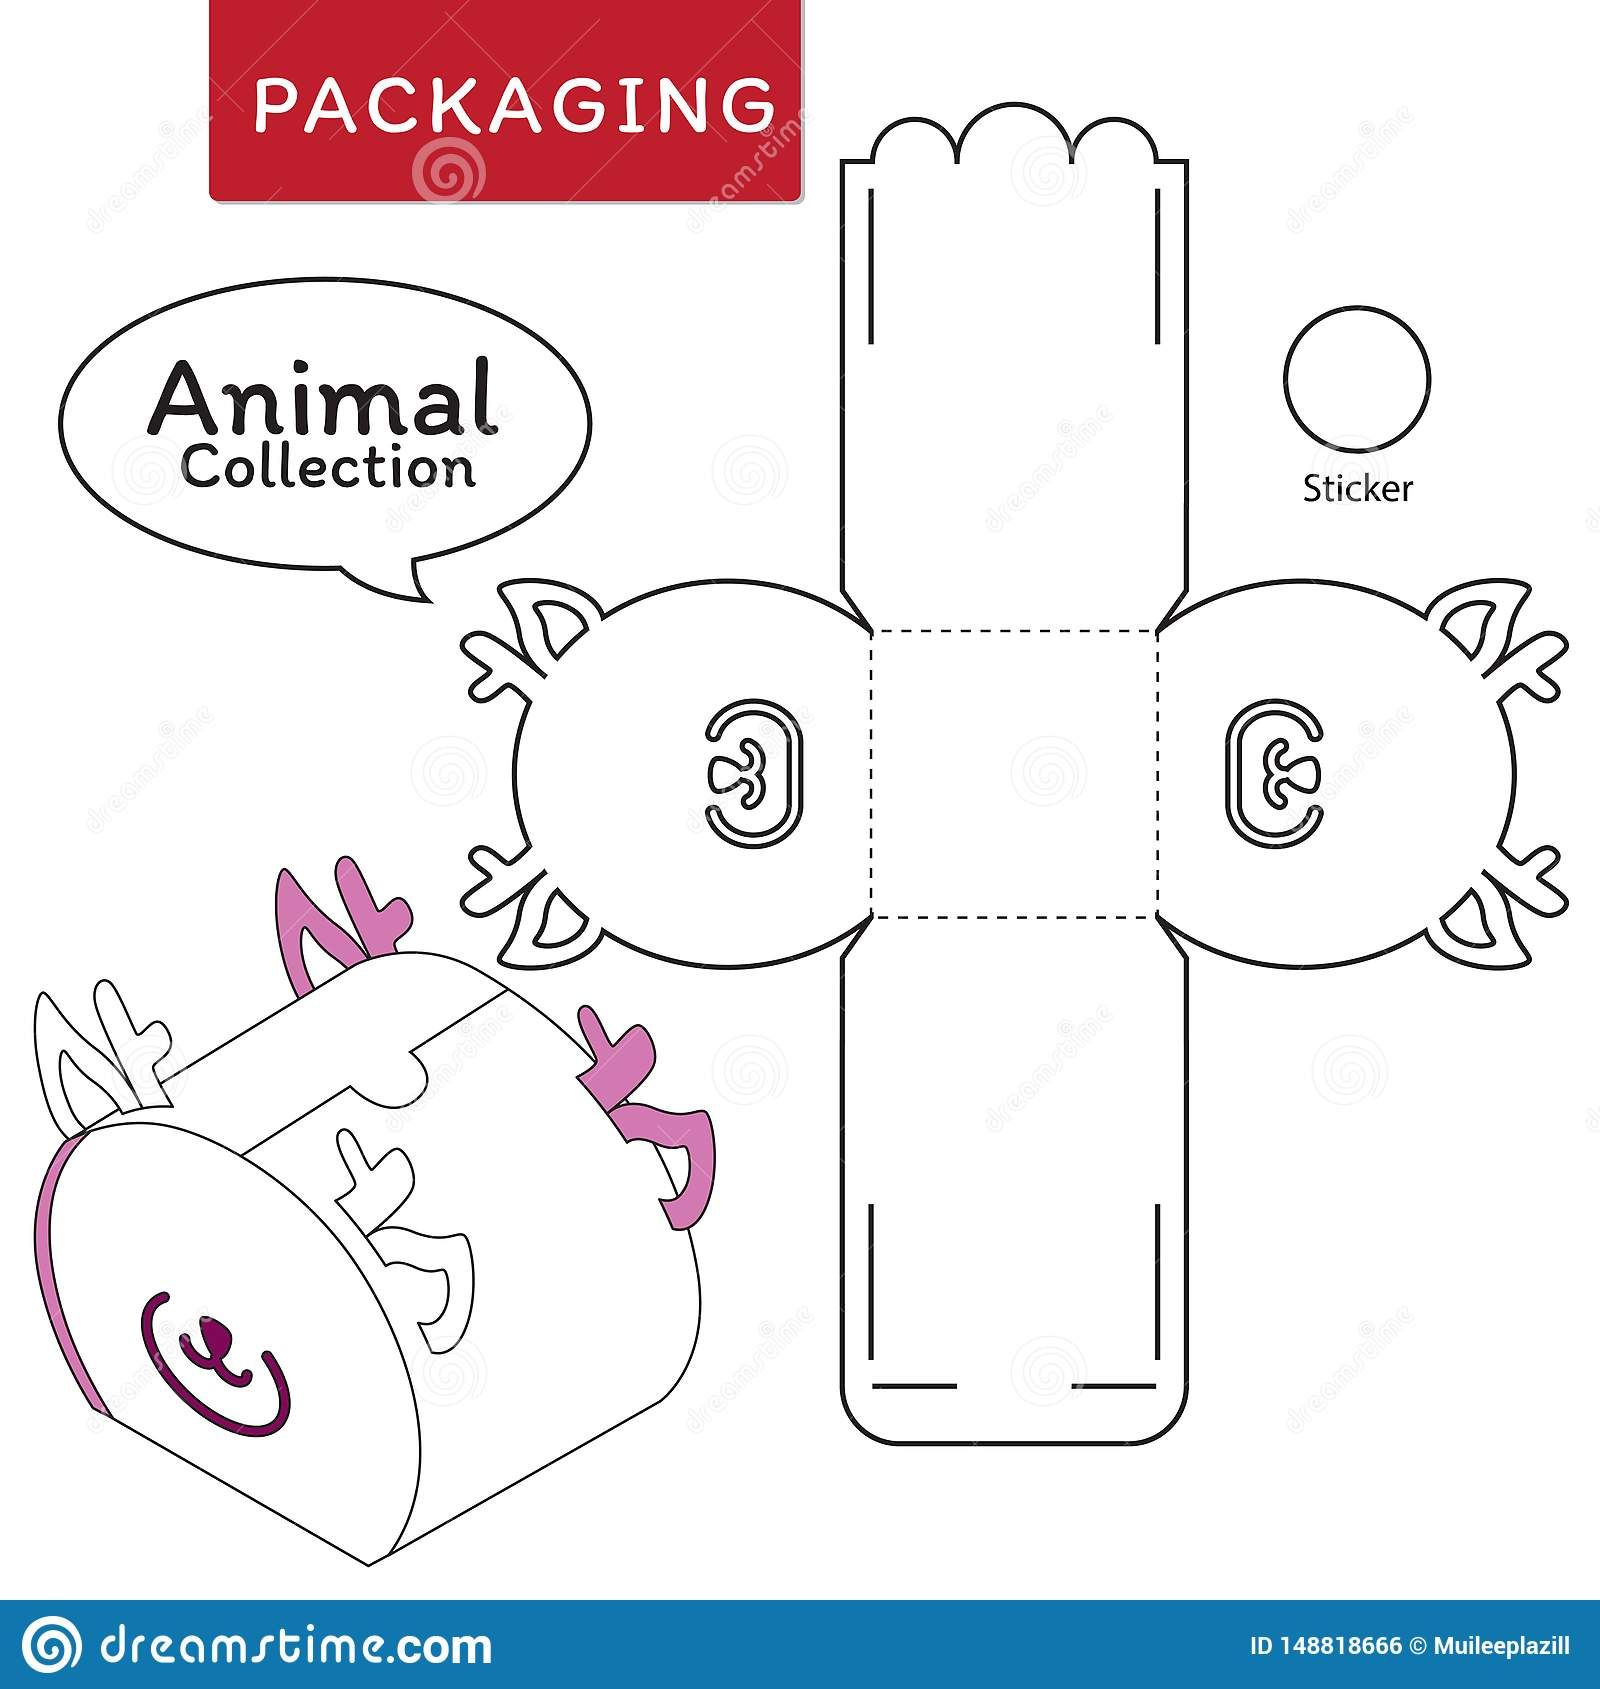 Animal collection vector Illustration of Box.